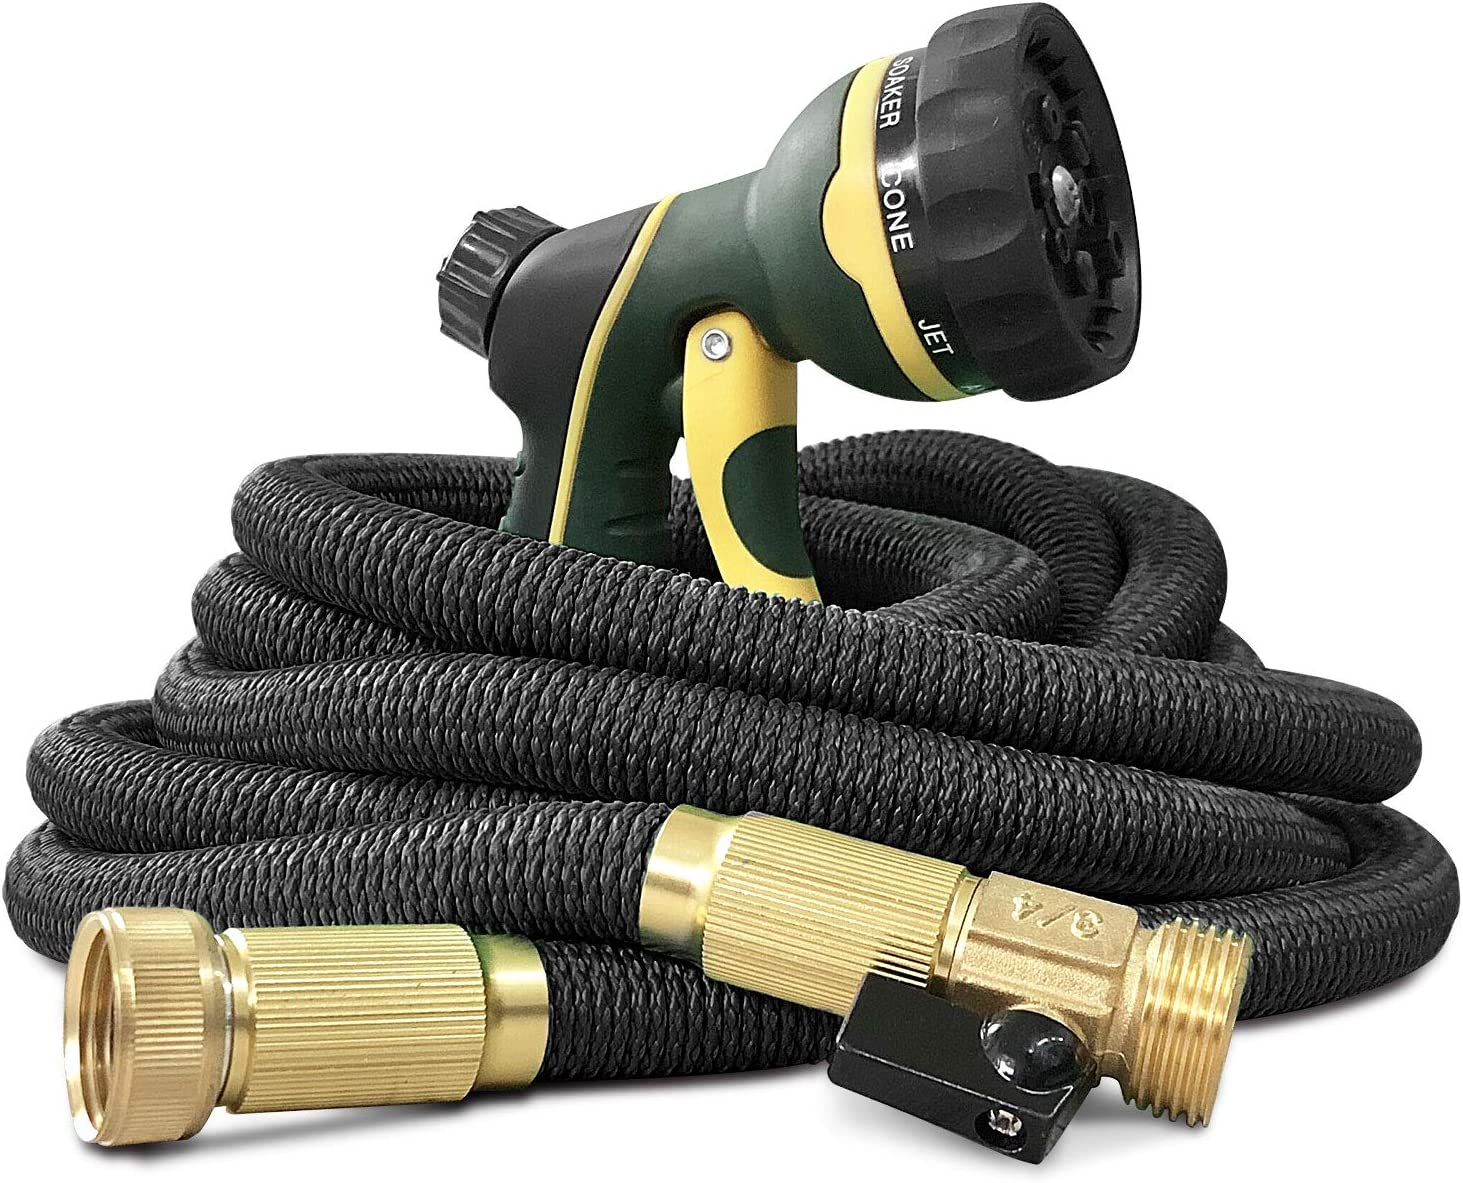 NGreen Garden Hose Flexible and Expandable - Collapsible Water Hose with Solid Brass Fittings and Spray Nozzle, Lightweight Retractable Leakproof Durable Gardening Hose Easy Storage Kink Free(25FT)